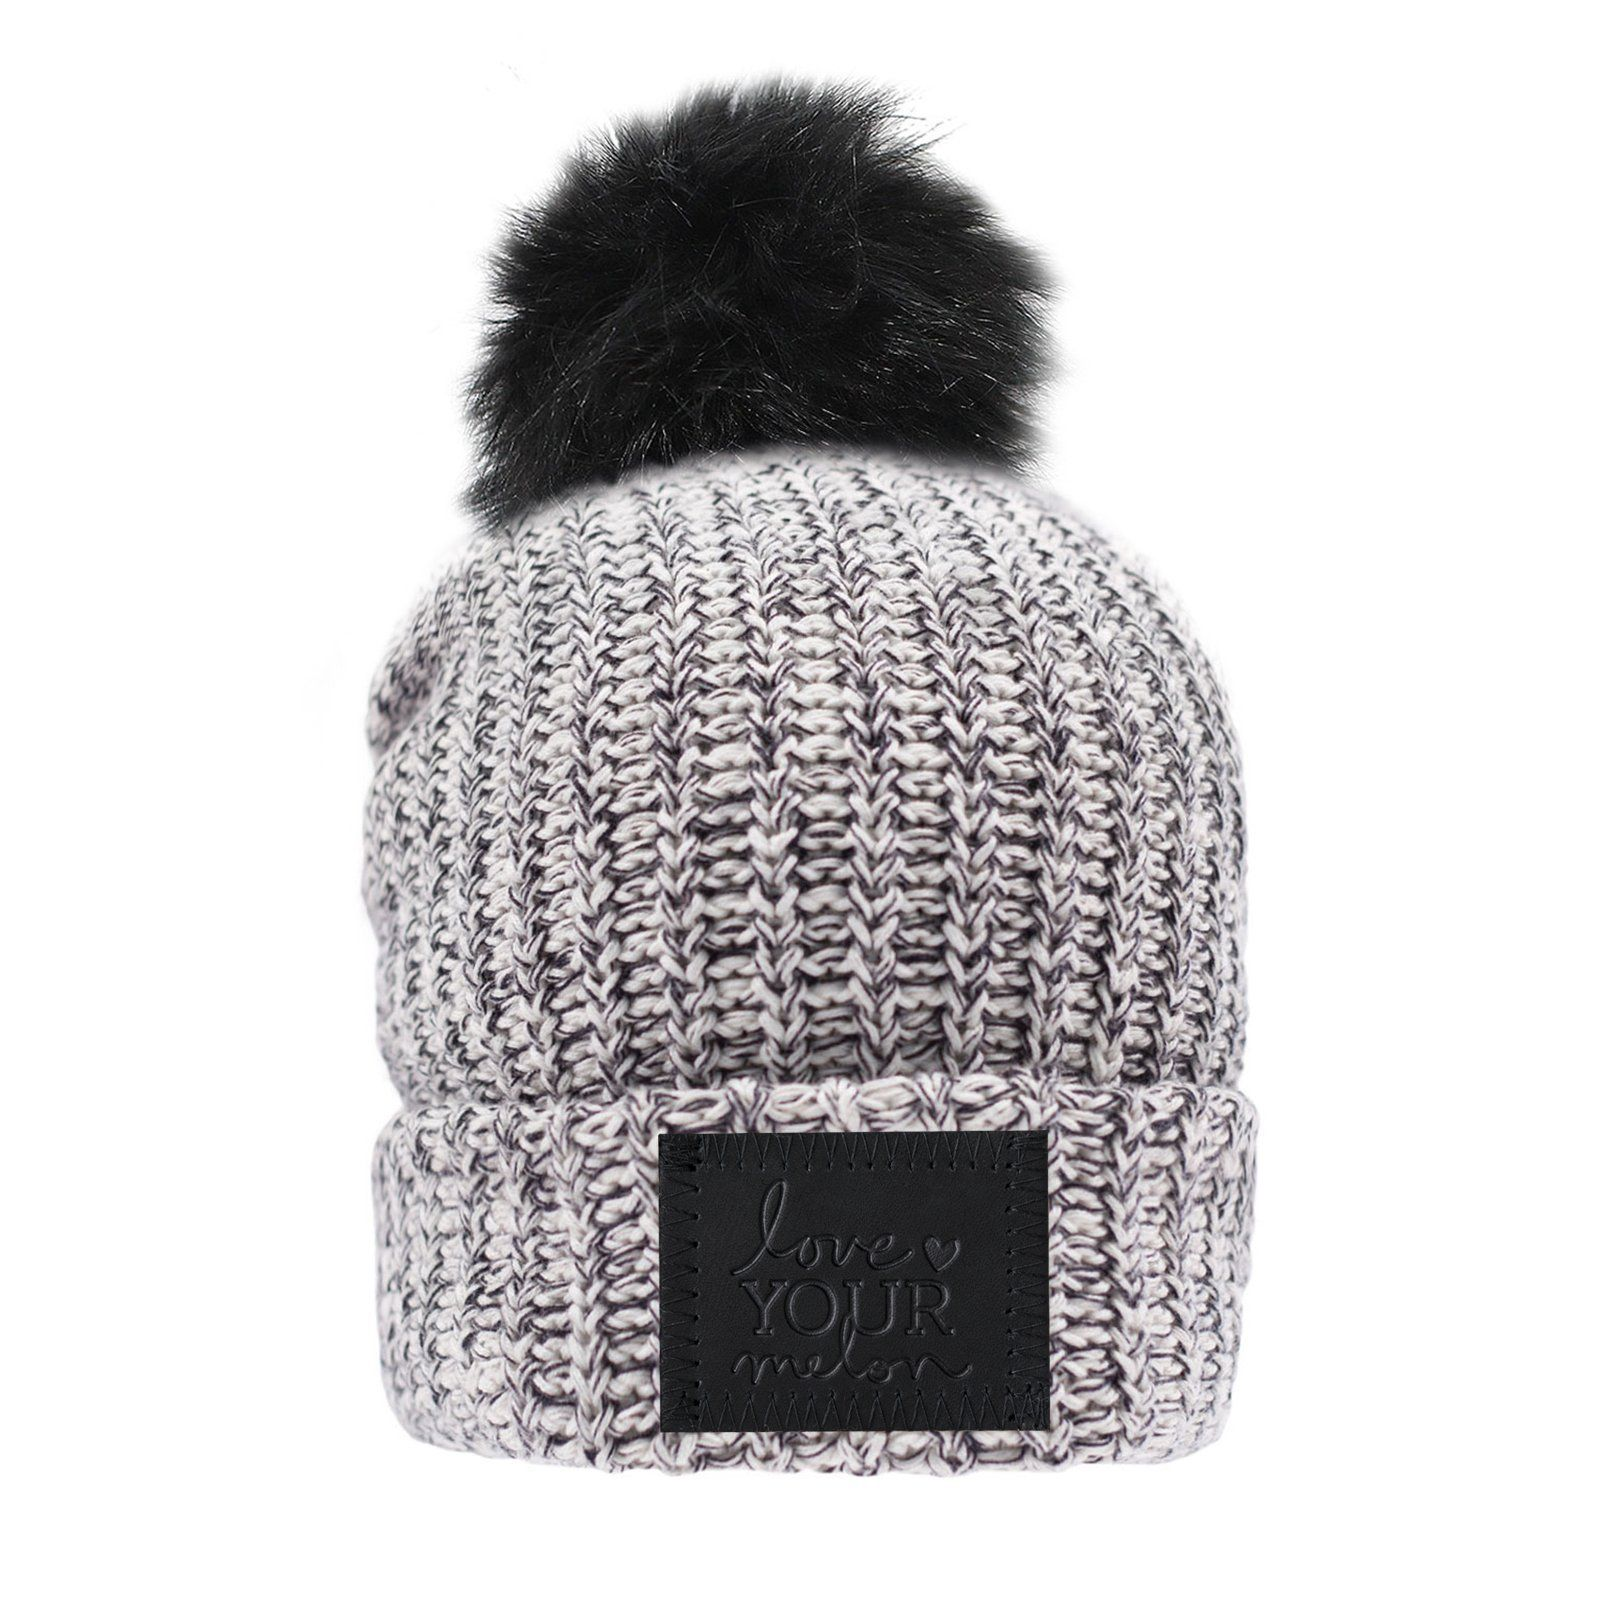 Love Your Melon Black Speckled Pom Beanie (Black Leather Patch ... ece3c8cef6c